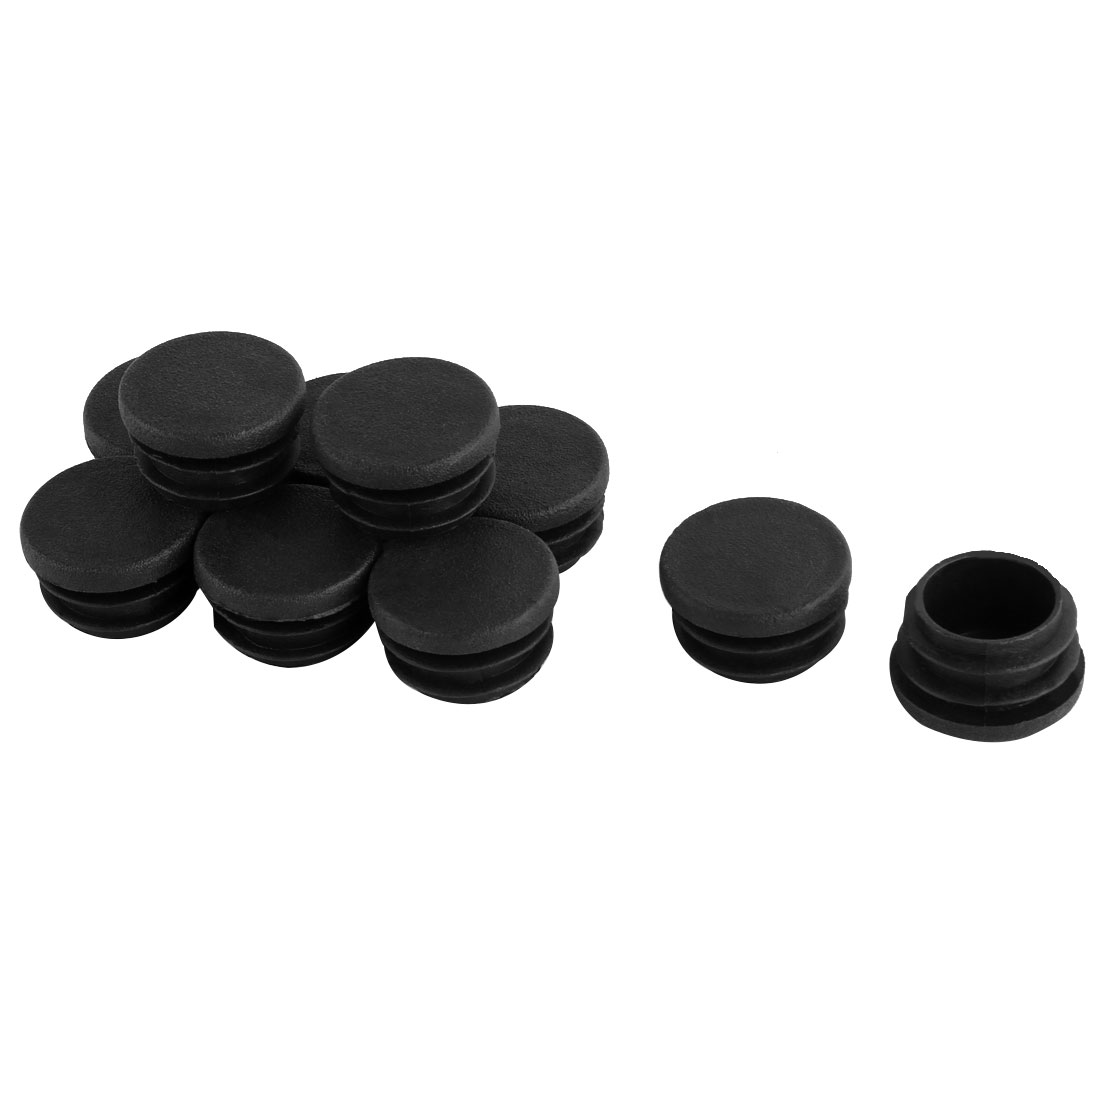 Furniture 25mm Diameter Black Plastic Screw Type Caps Covers 10 Pcs